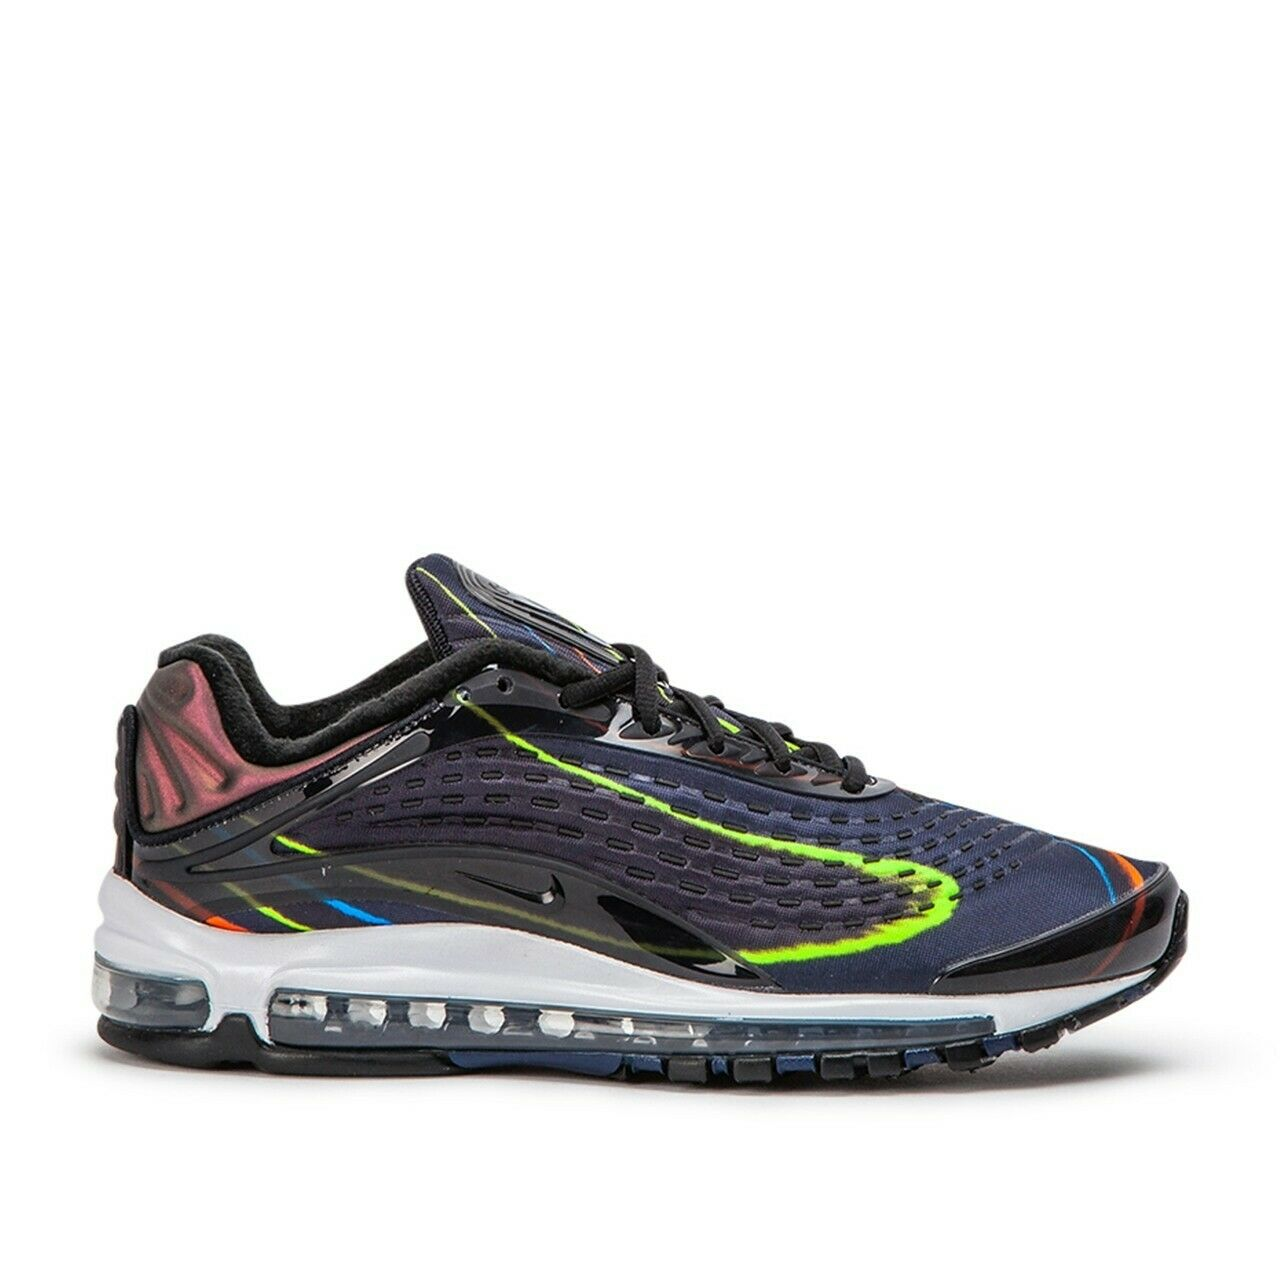 Nike Air Max Deluxe Black Navy Running Sz 5-13 AJ7831-001 Limited